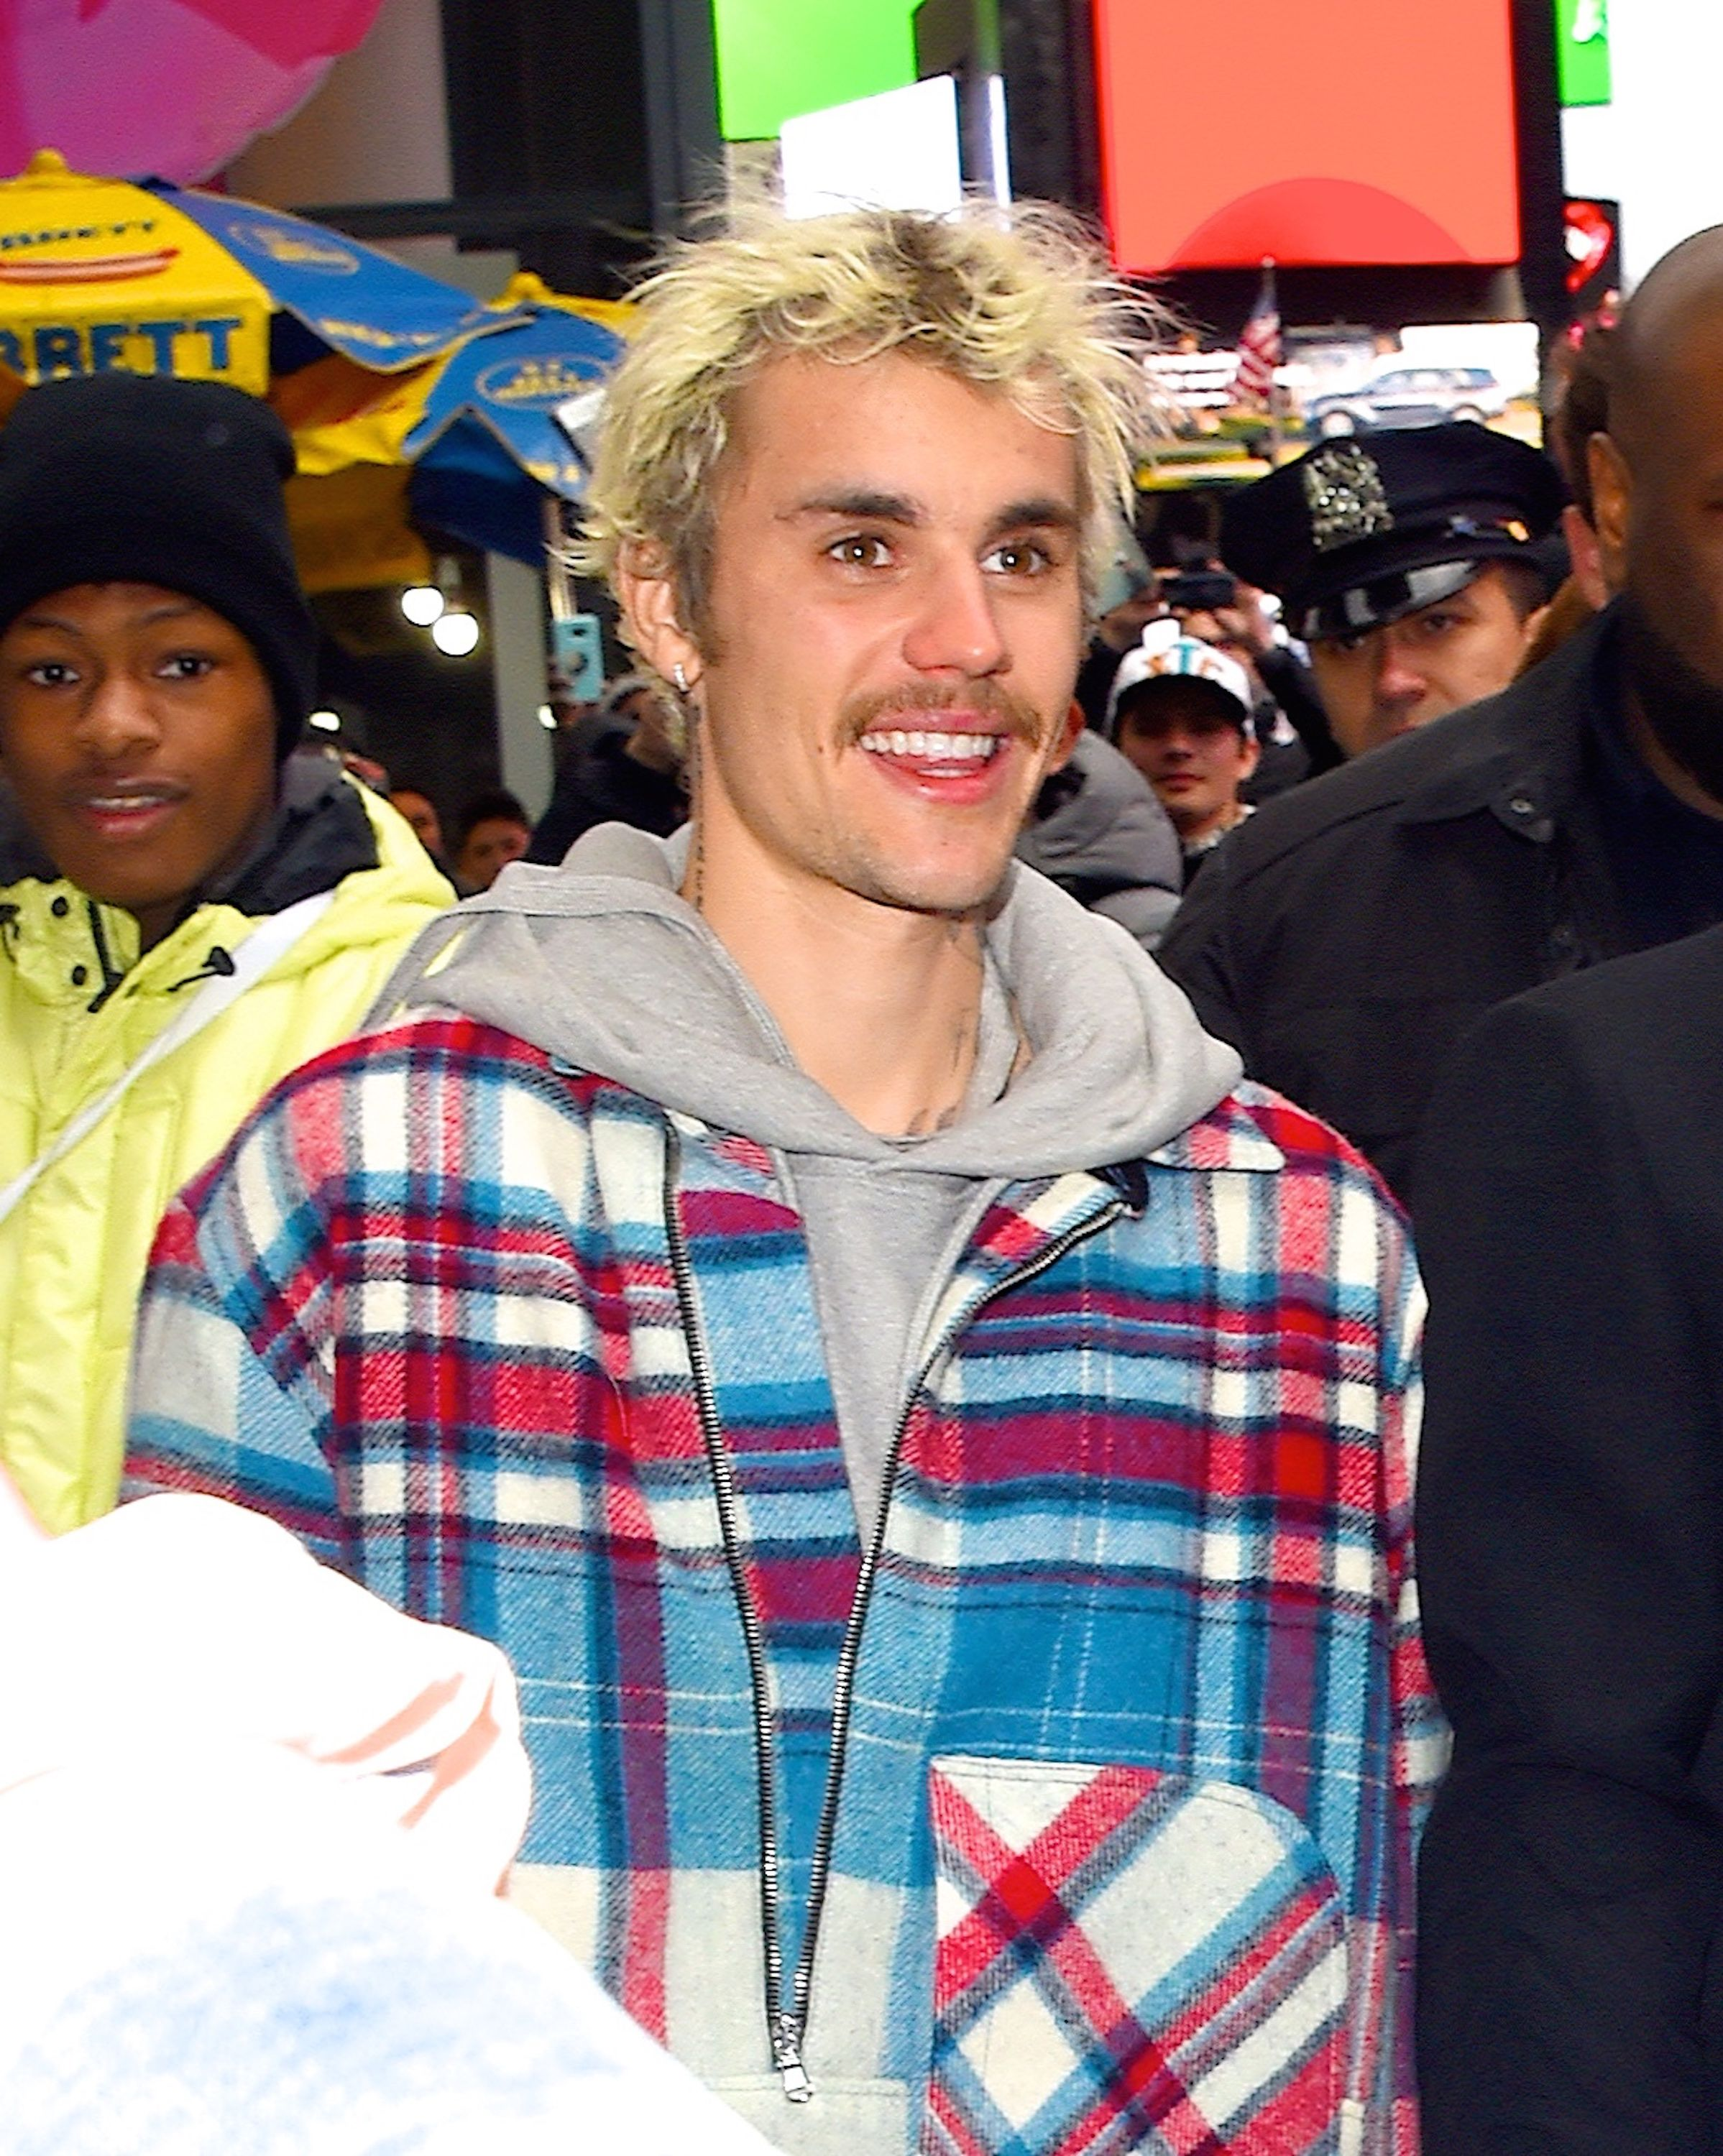 Justin Bieber Teared Up Explaining Why He Wants to 'Protect' Billie Eilish